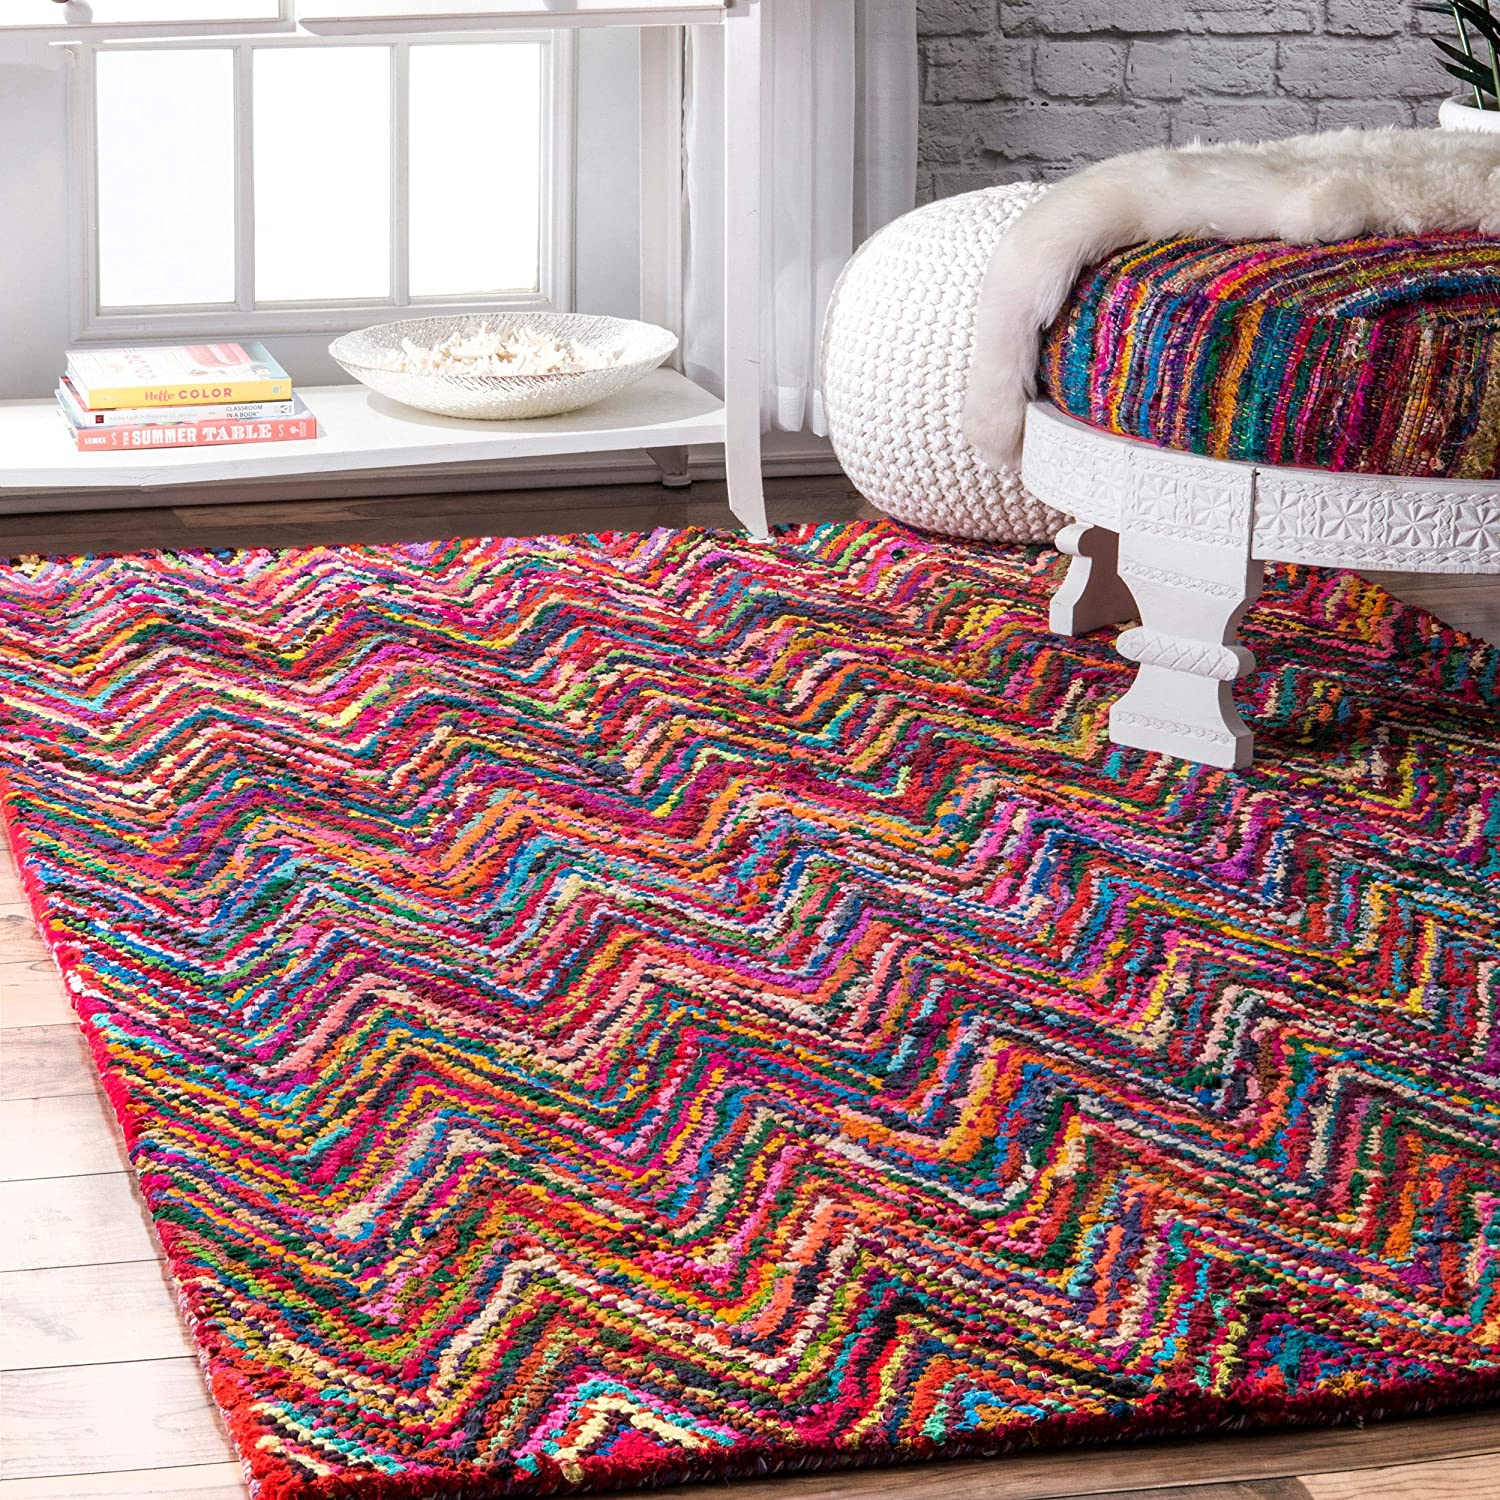 5% OFF nuLOOM Oconnor Hand Braided Area Rug 9' Some reservation 6